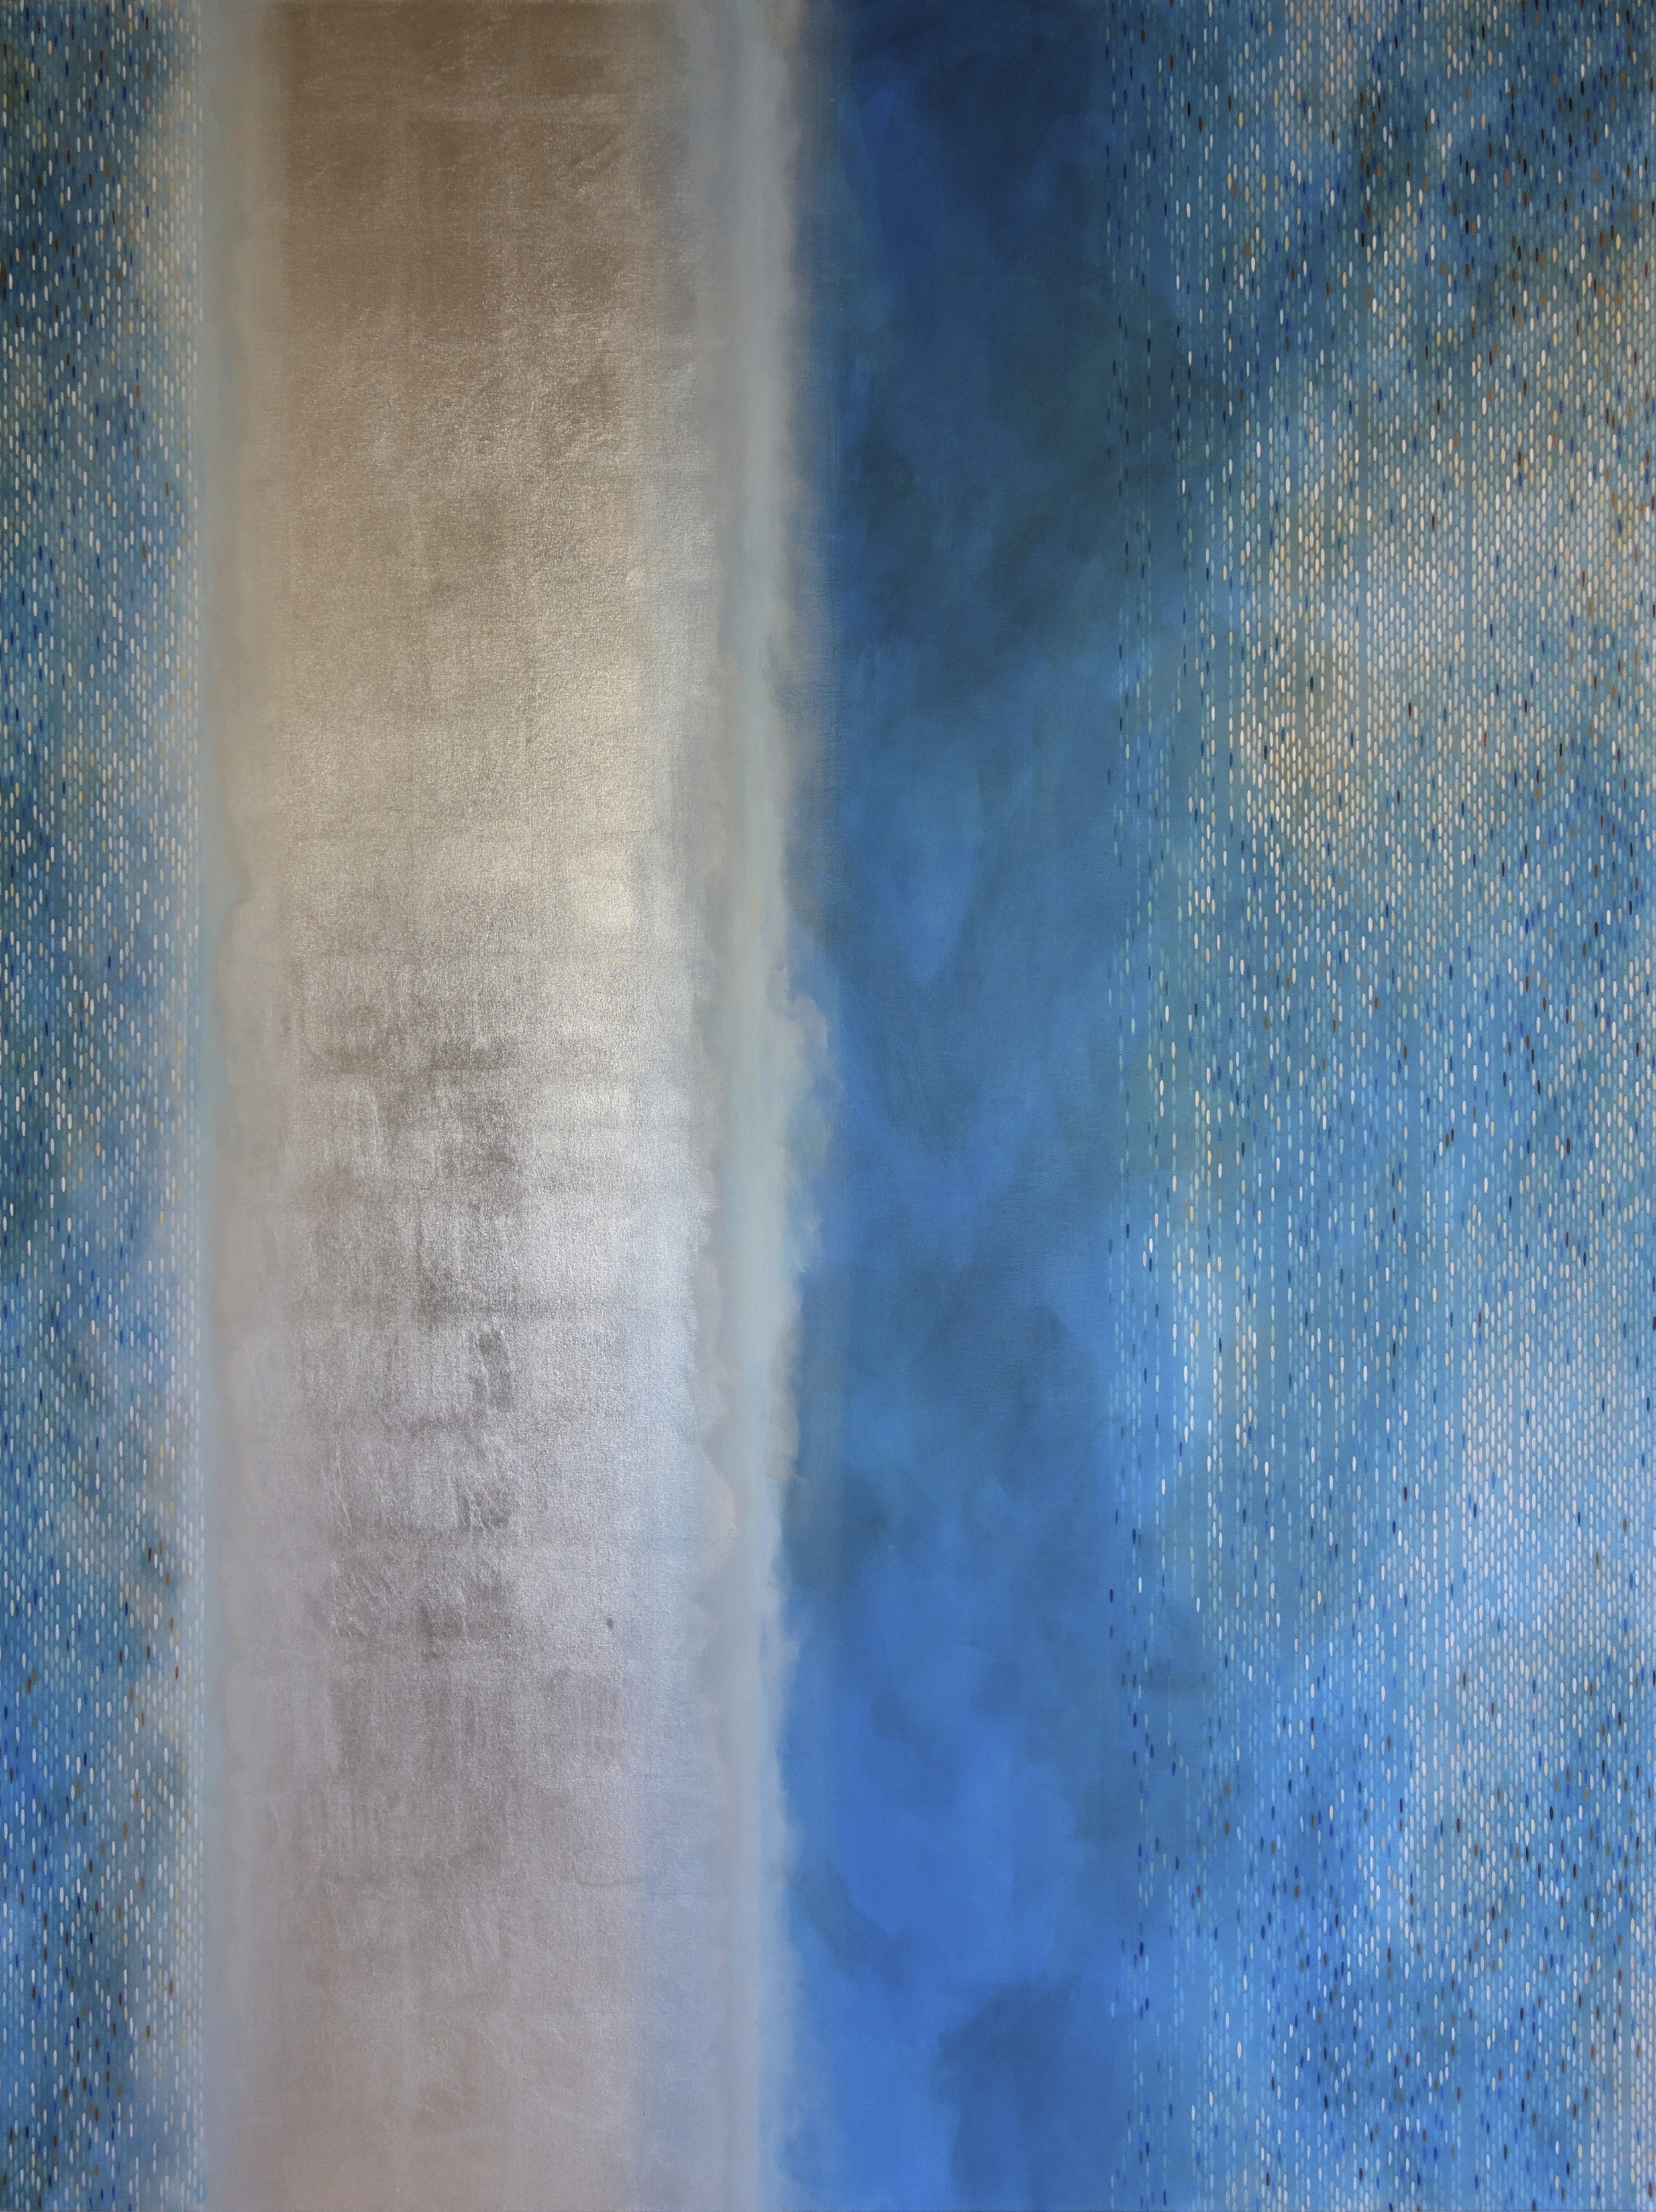 """Julika LacknerSpectral Phase #4, 2013,Acrylic, oil + alum-silver on canvas, 96""""x72"""""""